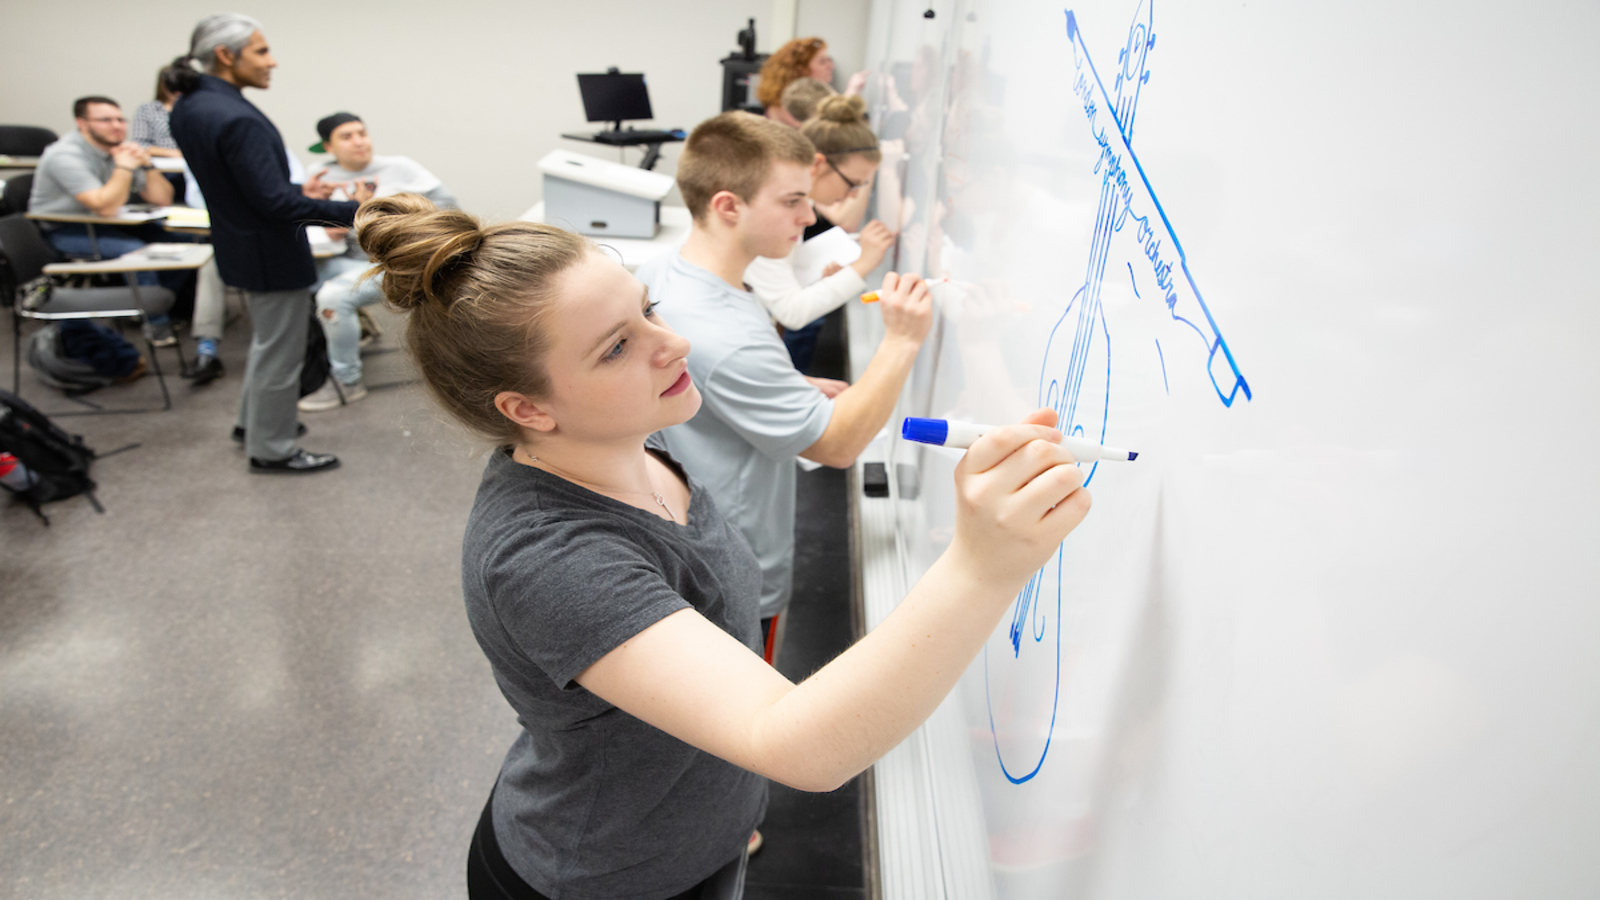 students drawing logos on a whiteboard in the front of a classroom